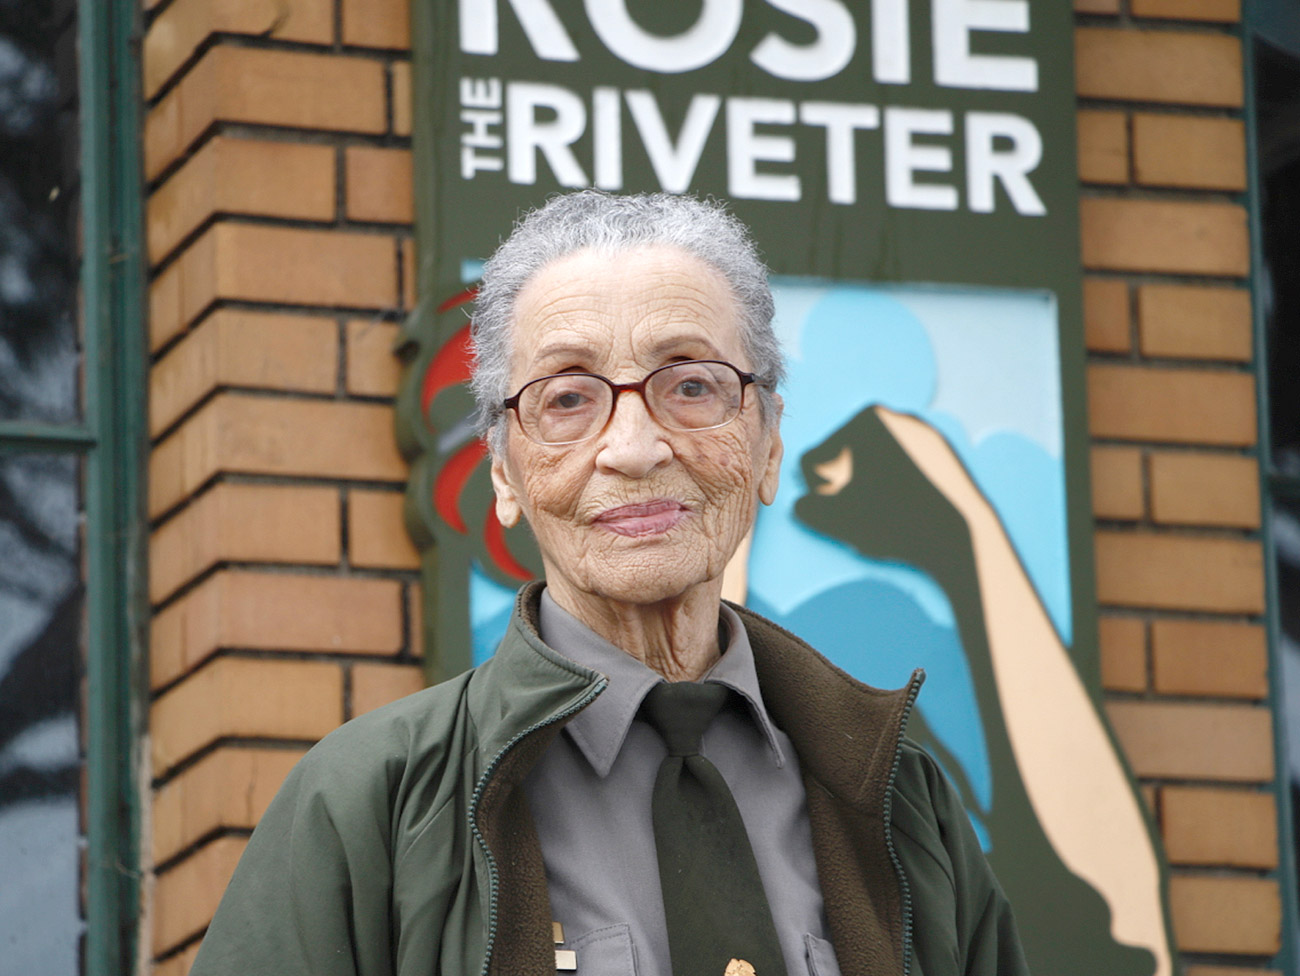 Park Ranger Betty Reid Soskin standing in front of the Rosie the Riveter Museum in Richmond, CA